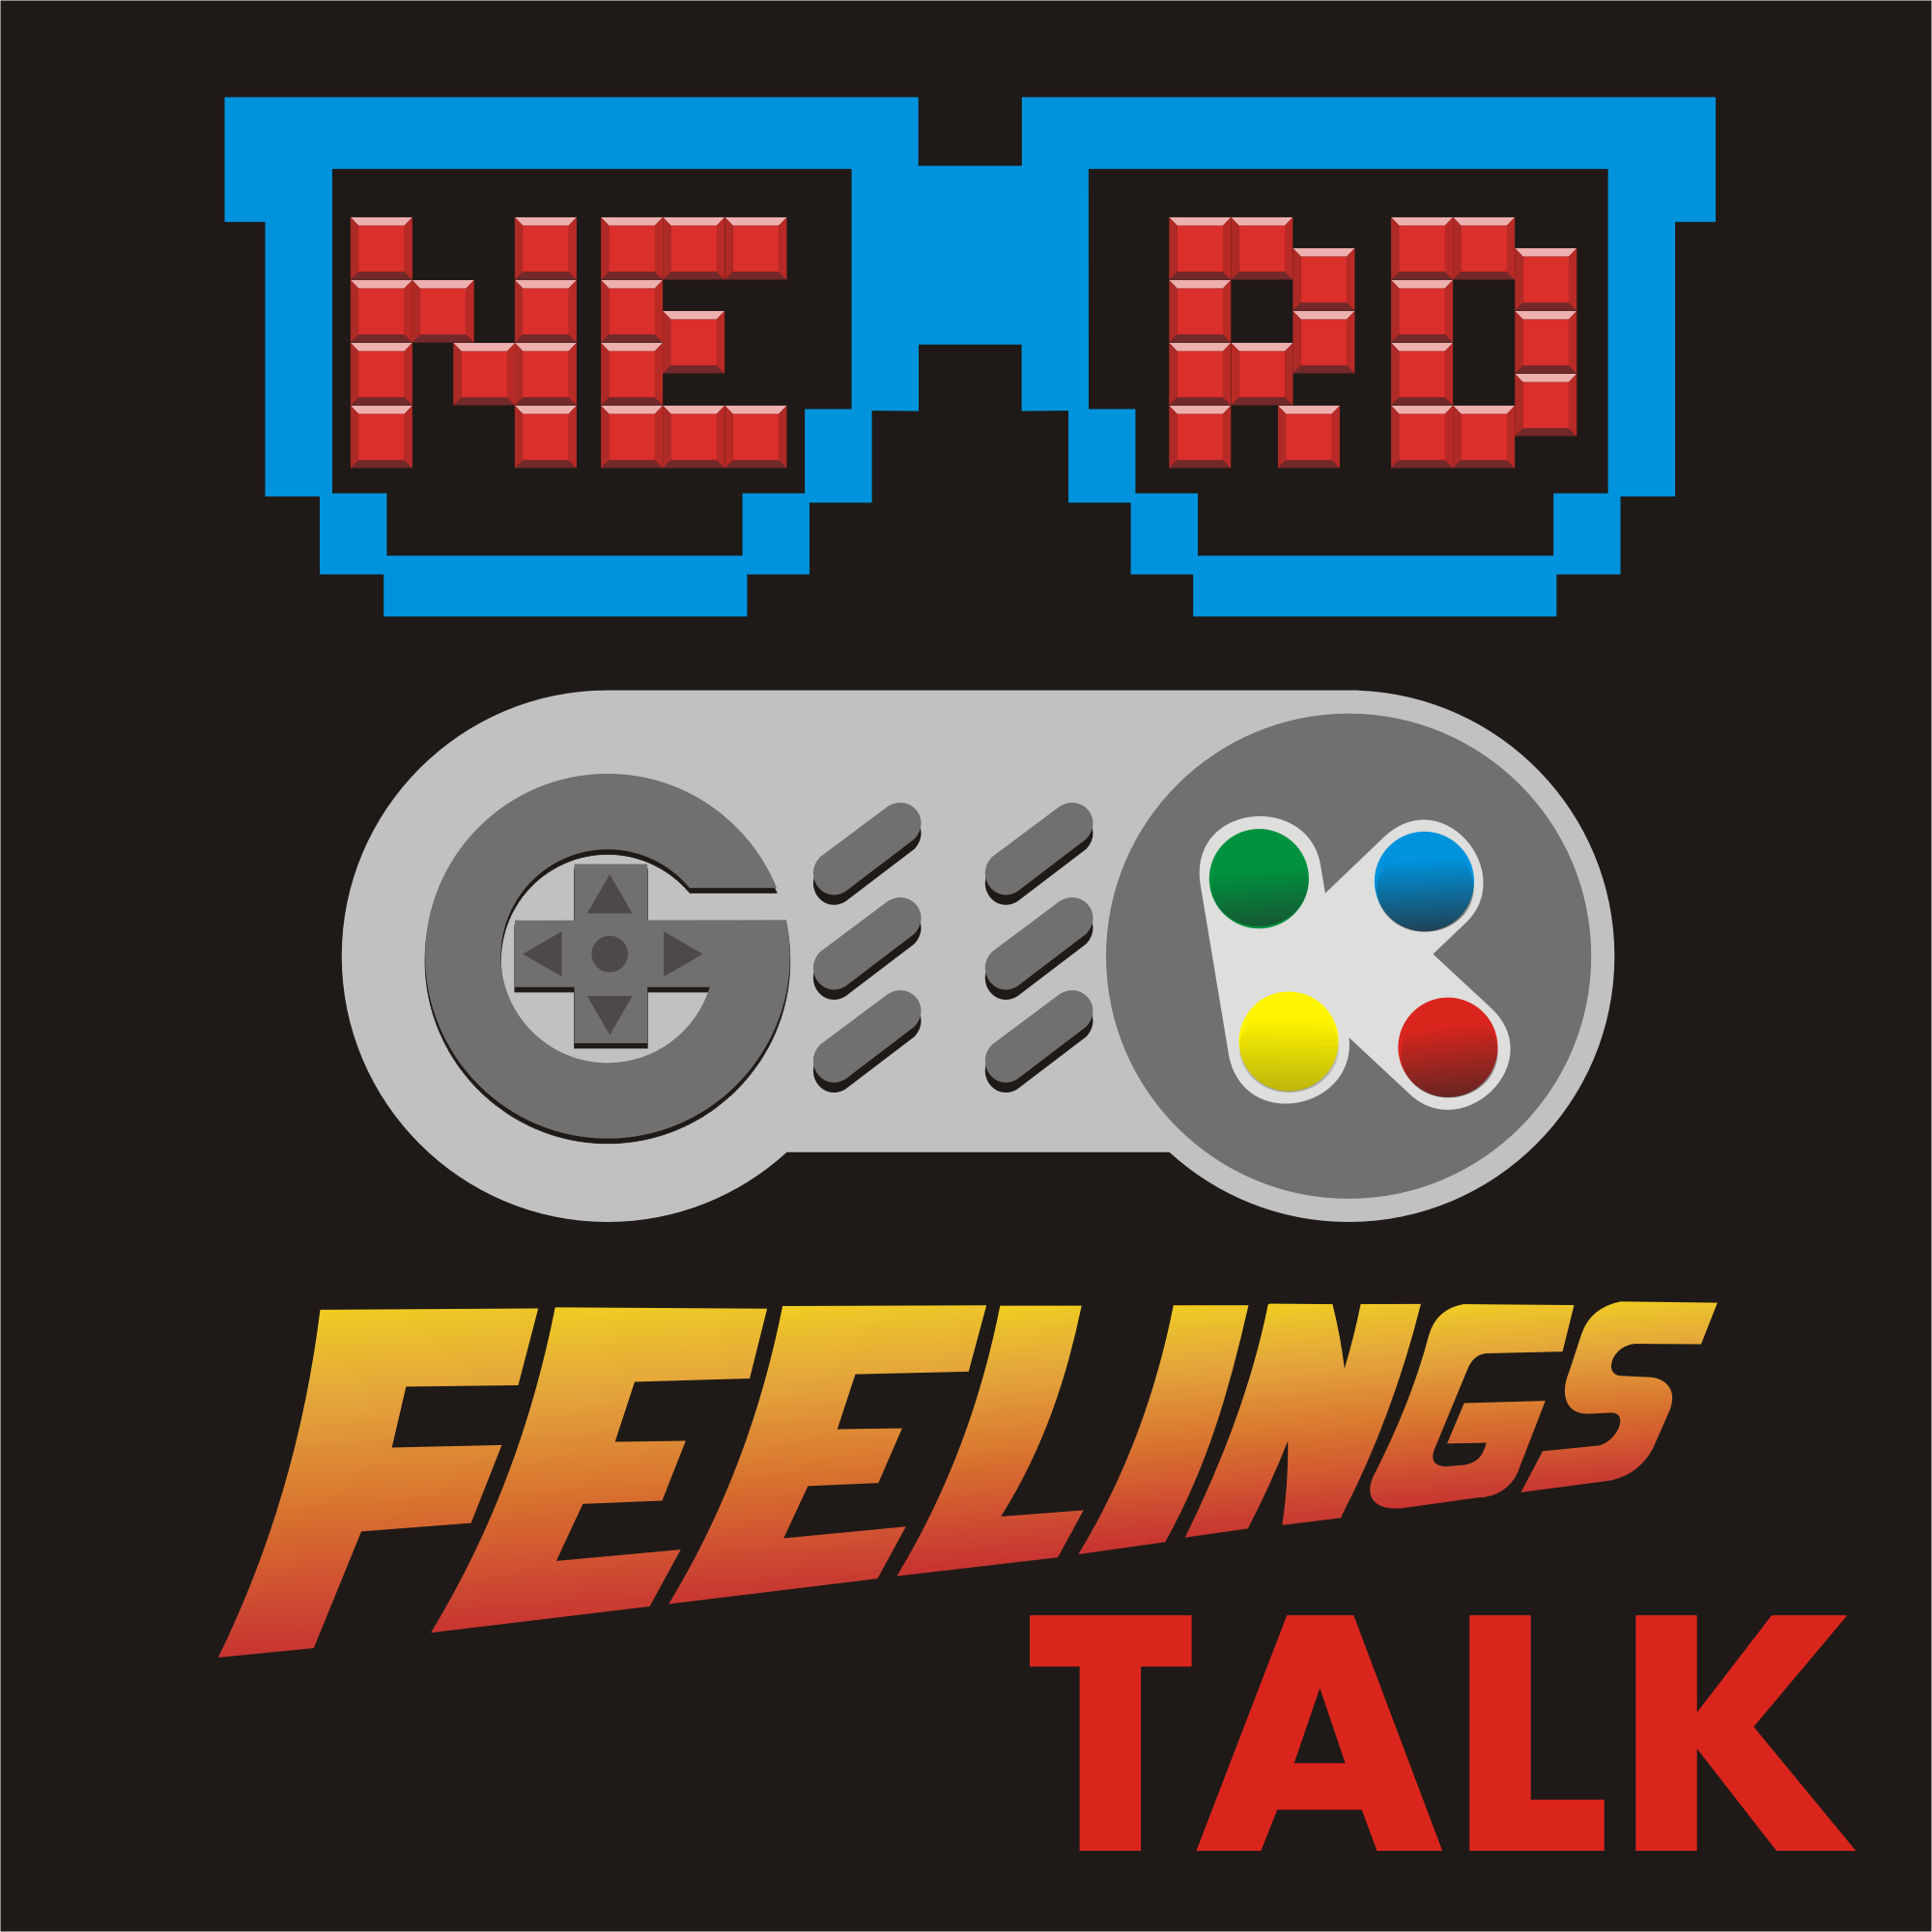 [PODCAST] – NERD GEEK FEELINGS